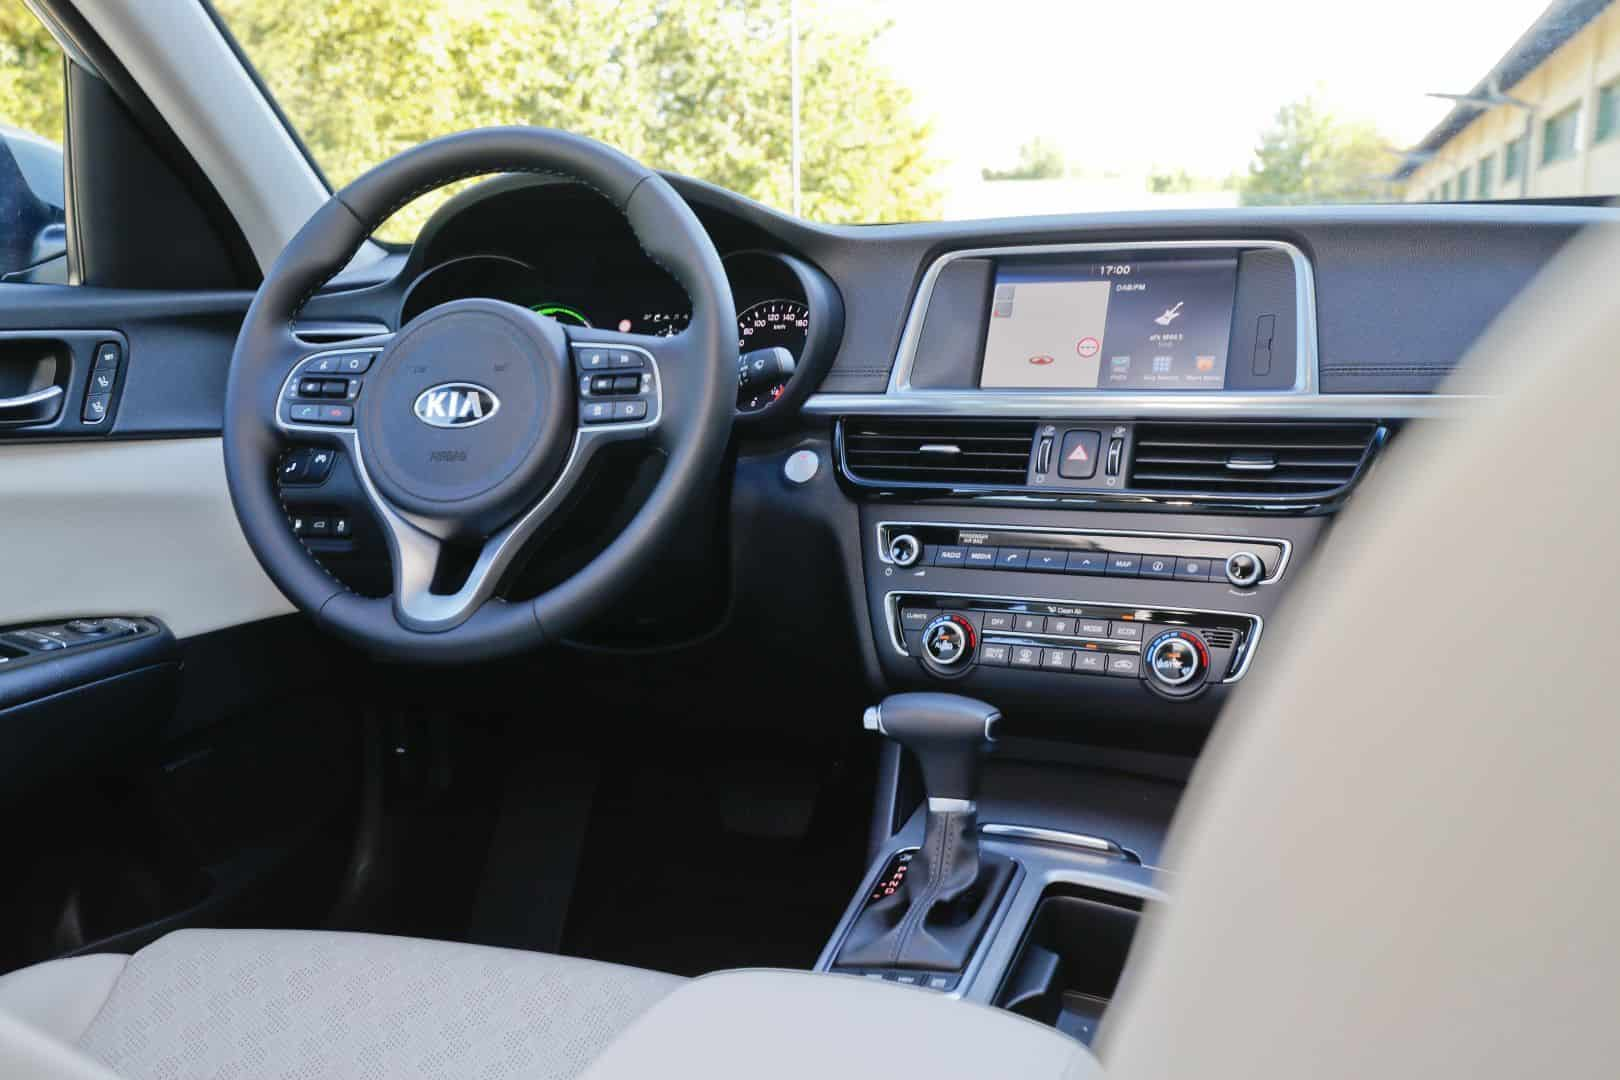 Kia Optima PHEV Cockpit